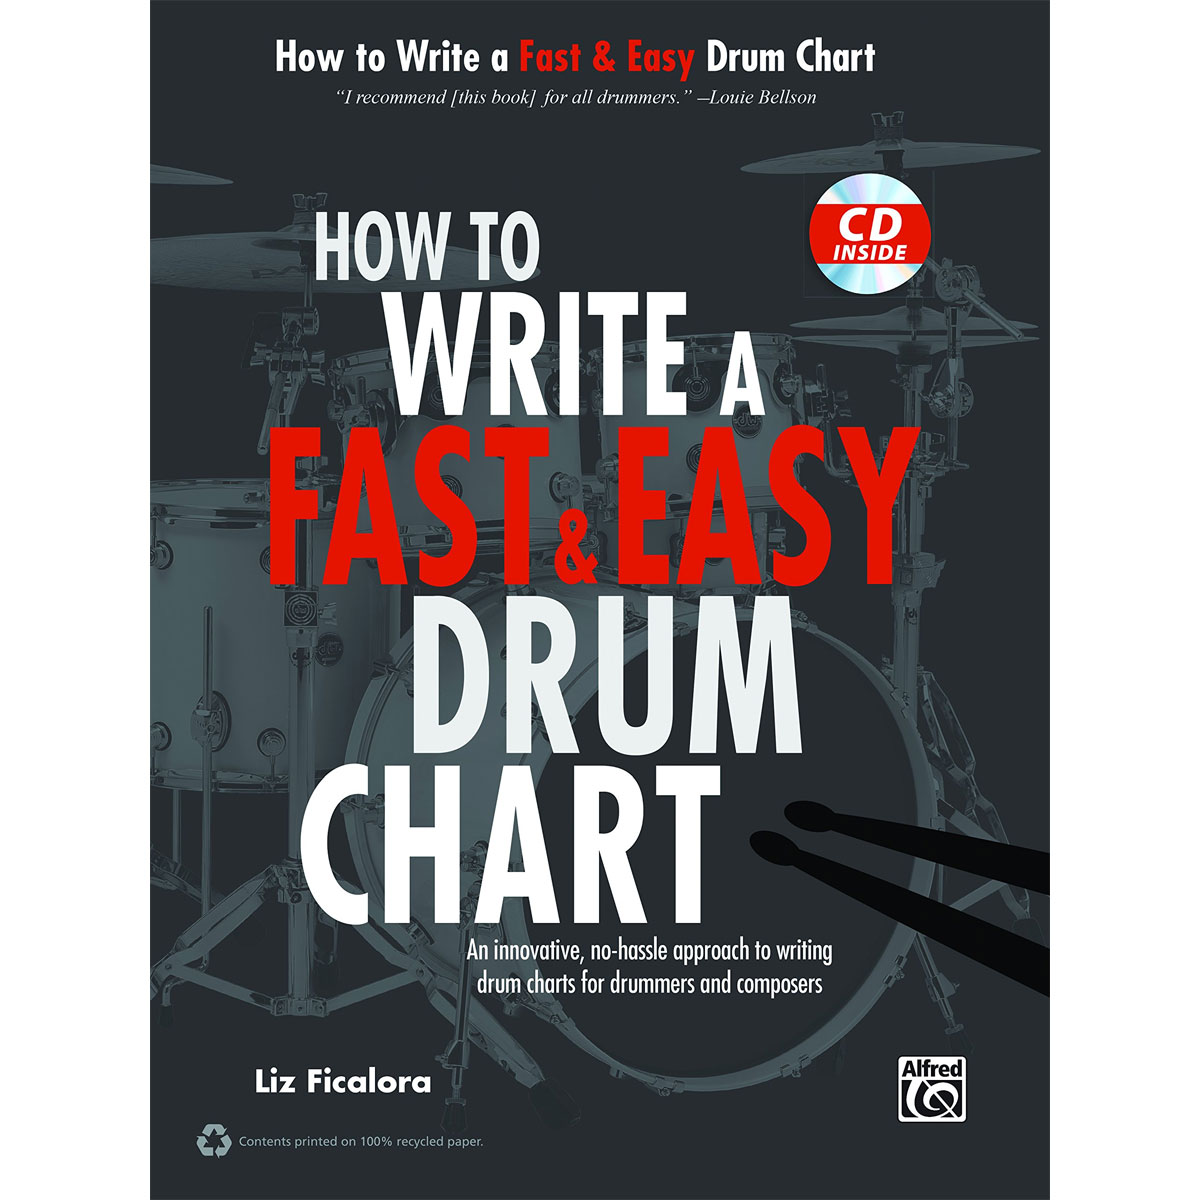 How to Write a Fast & Easy Drum Chart by Liz Ficalora